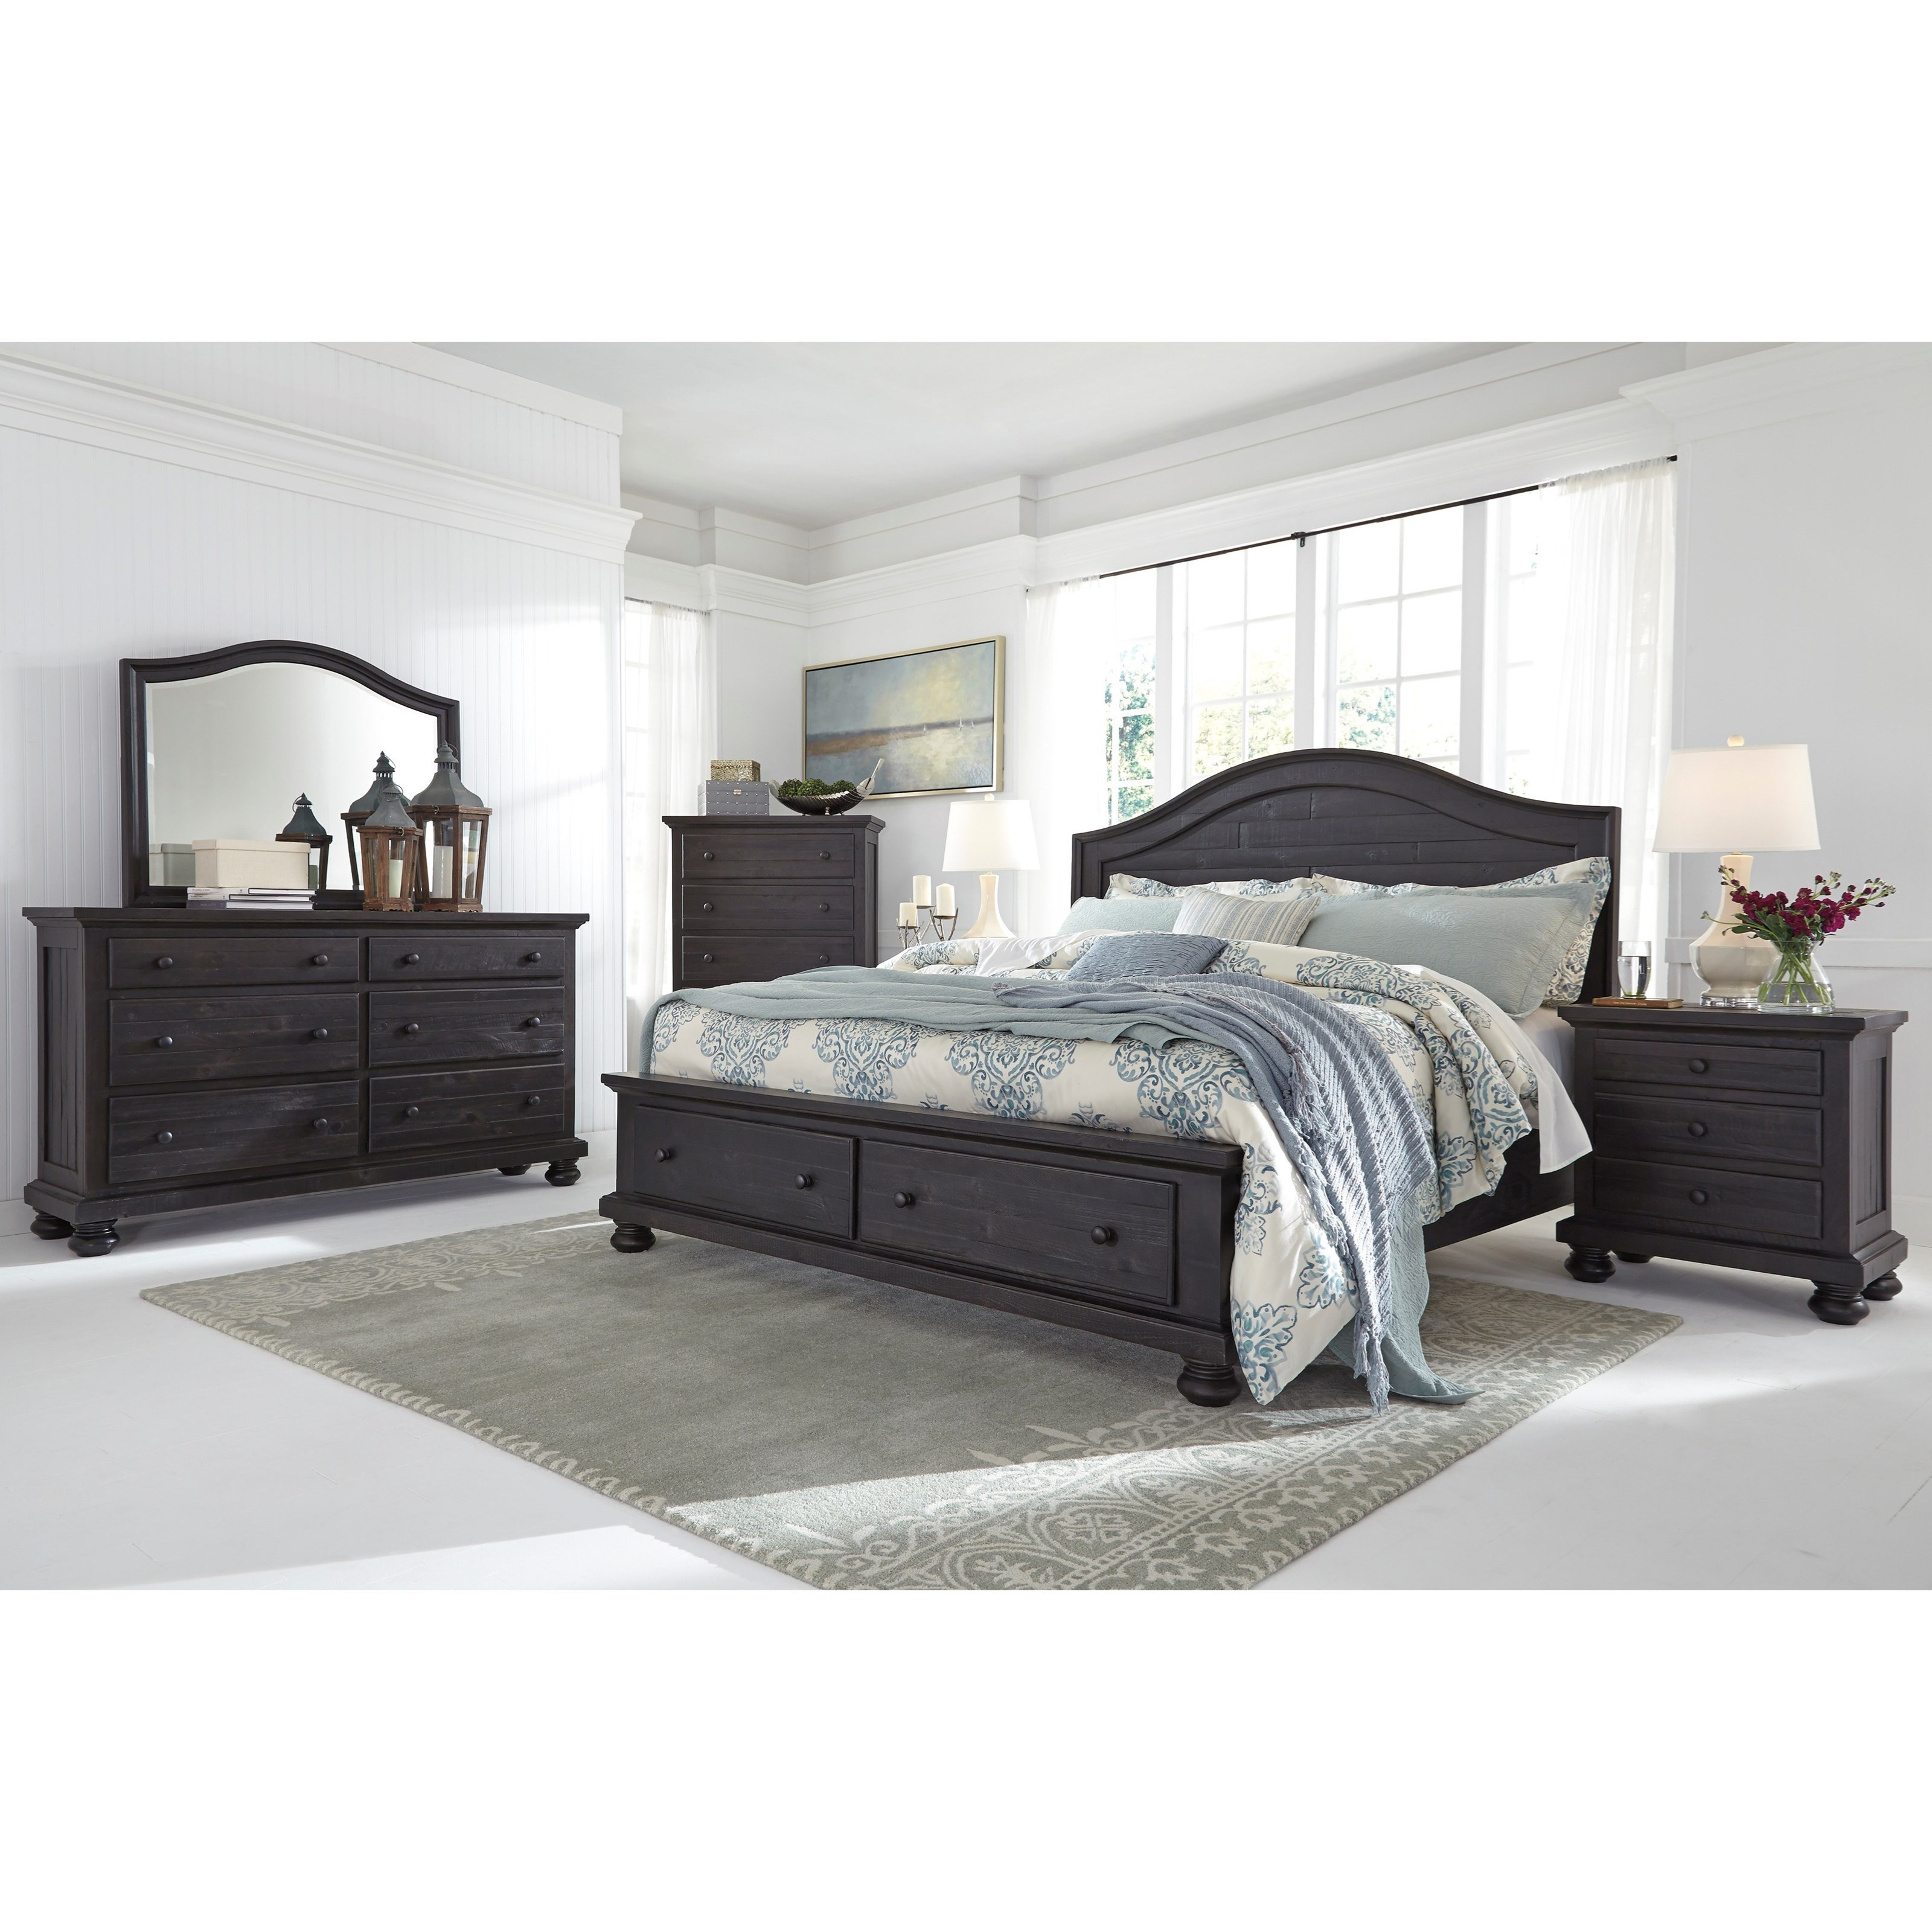 Signature Design By Ashley Sharlowe Solid Wood Queen Storage Bed With 2 Footboard Drawers